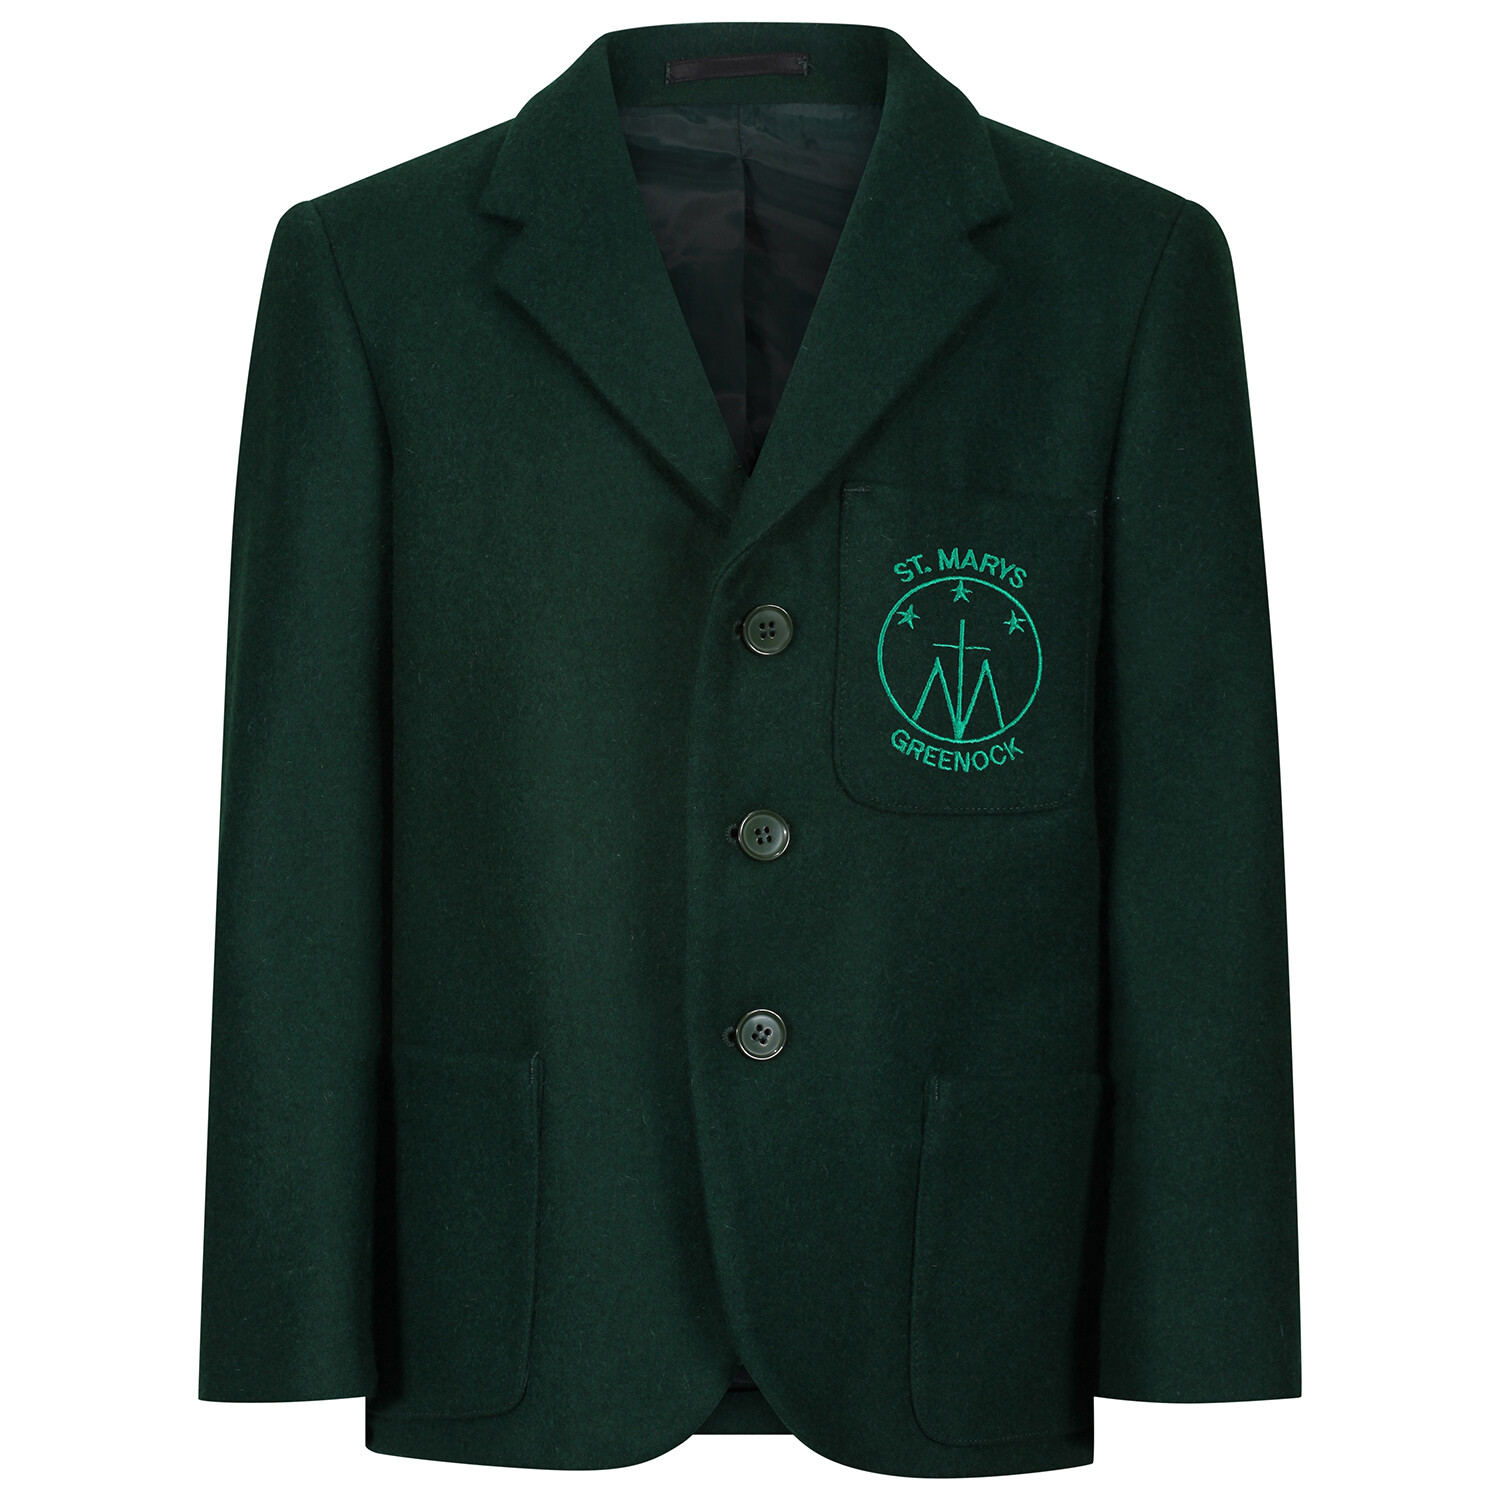 St Mary's Primary 'Wool' Blazer (Made-to-Order item)